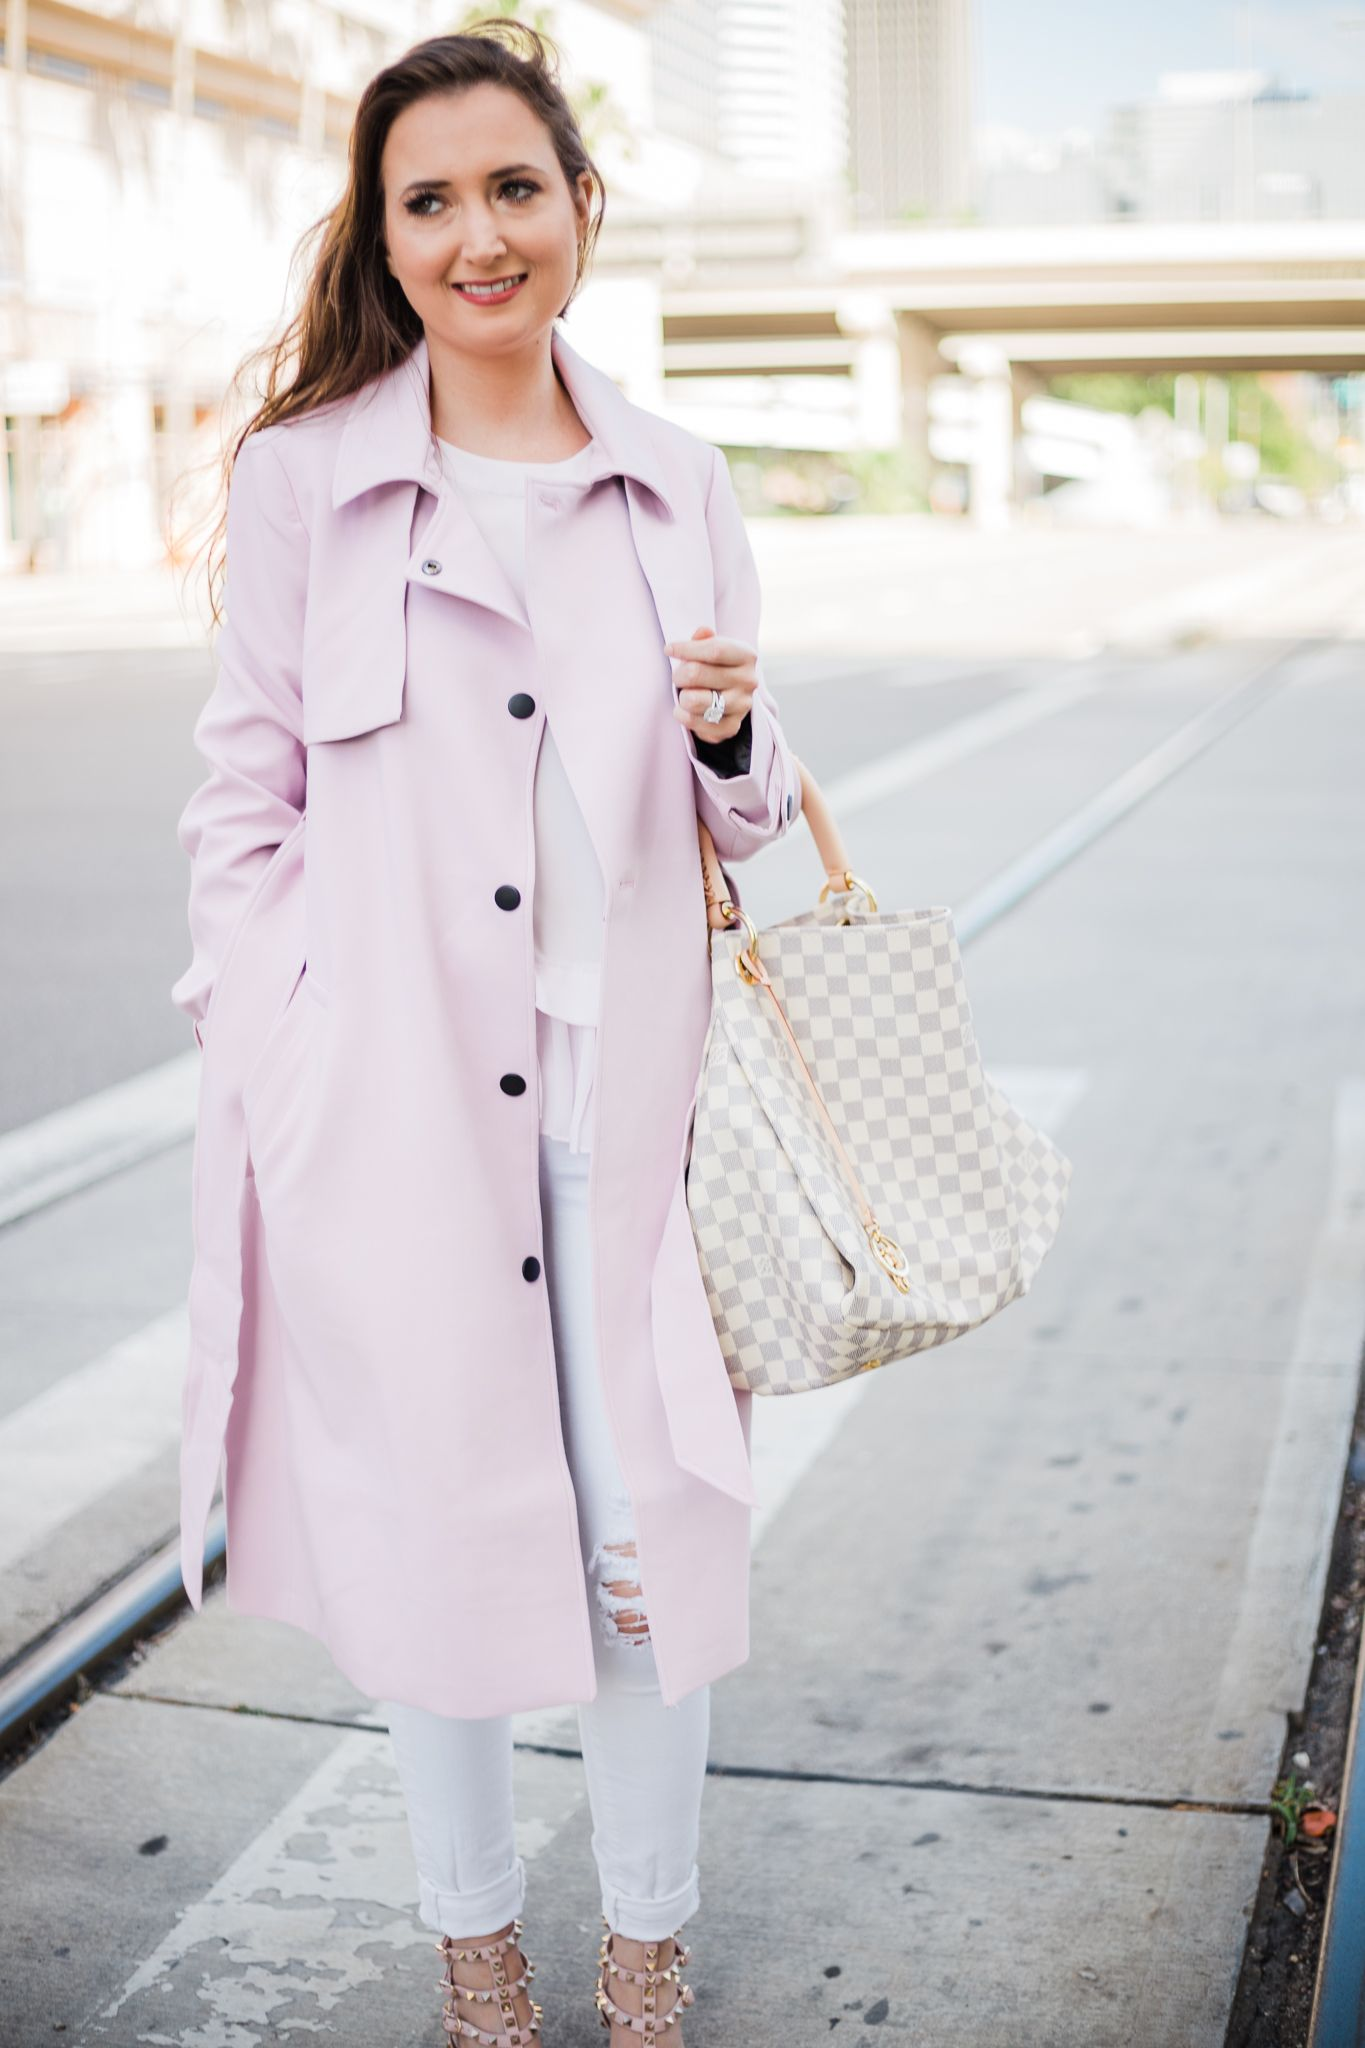 abb06b8fc81 How to wear pastels in fall and winter